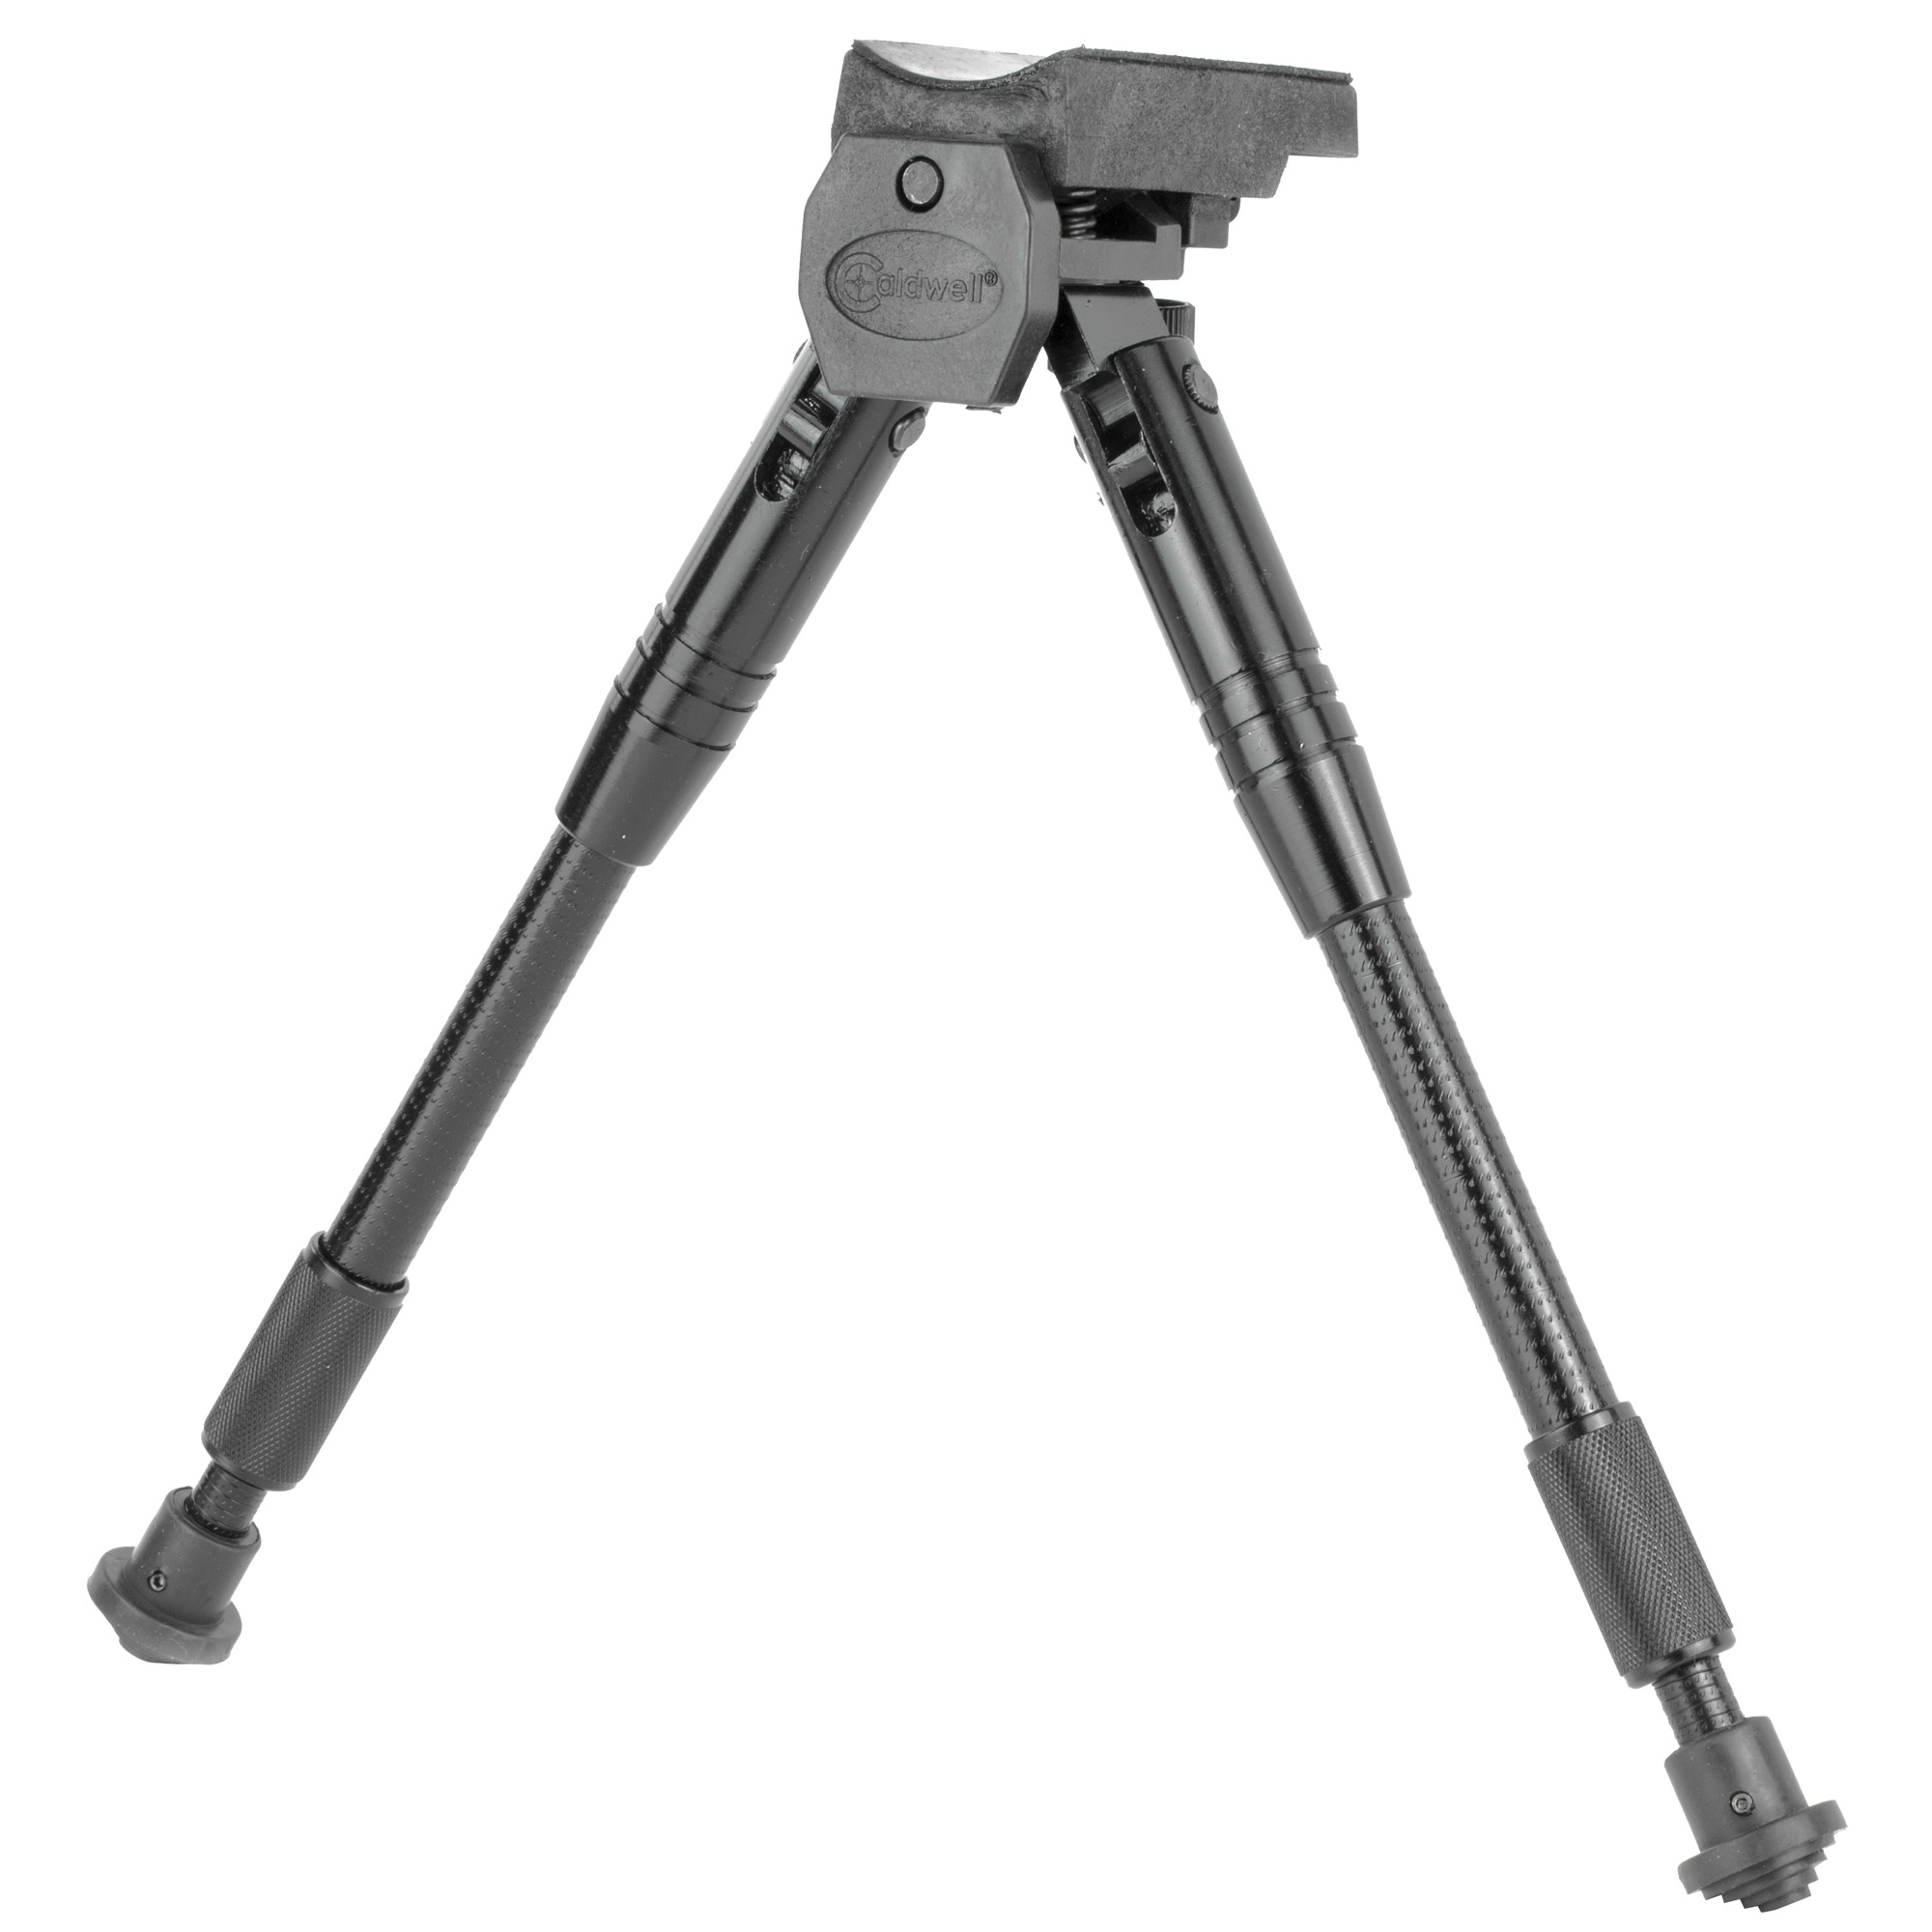 """Caldwell's 8""""-12"""" Bipod Prone Universal Sling Swivel Mount is designed with all of the features necessary for steady"""" accurate shooting"""" regardless of the range or terrain. Now you have extreme motion ranging capability with our exclusive wide-pan and stock canting features that come standard with our bipod design."""